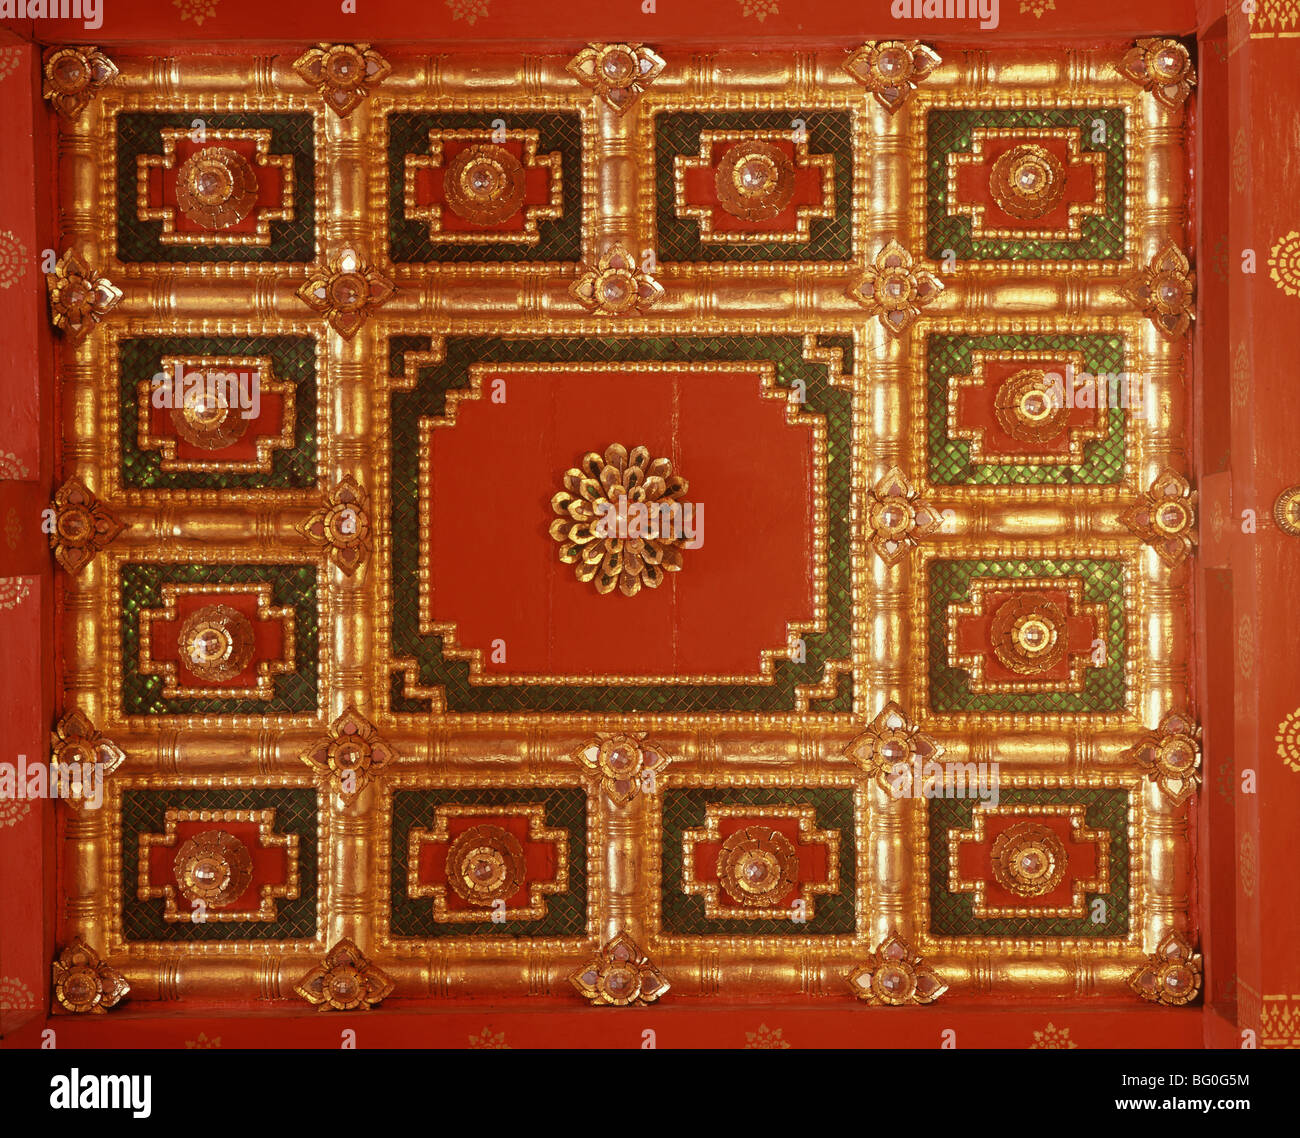 Ceiling of a temple in Ayutthaya, Thailand, Southeast Asia, Asia - Stock Image